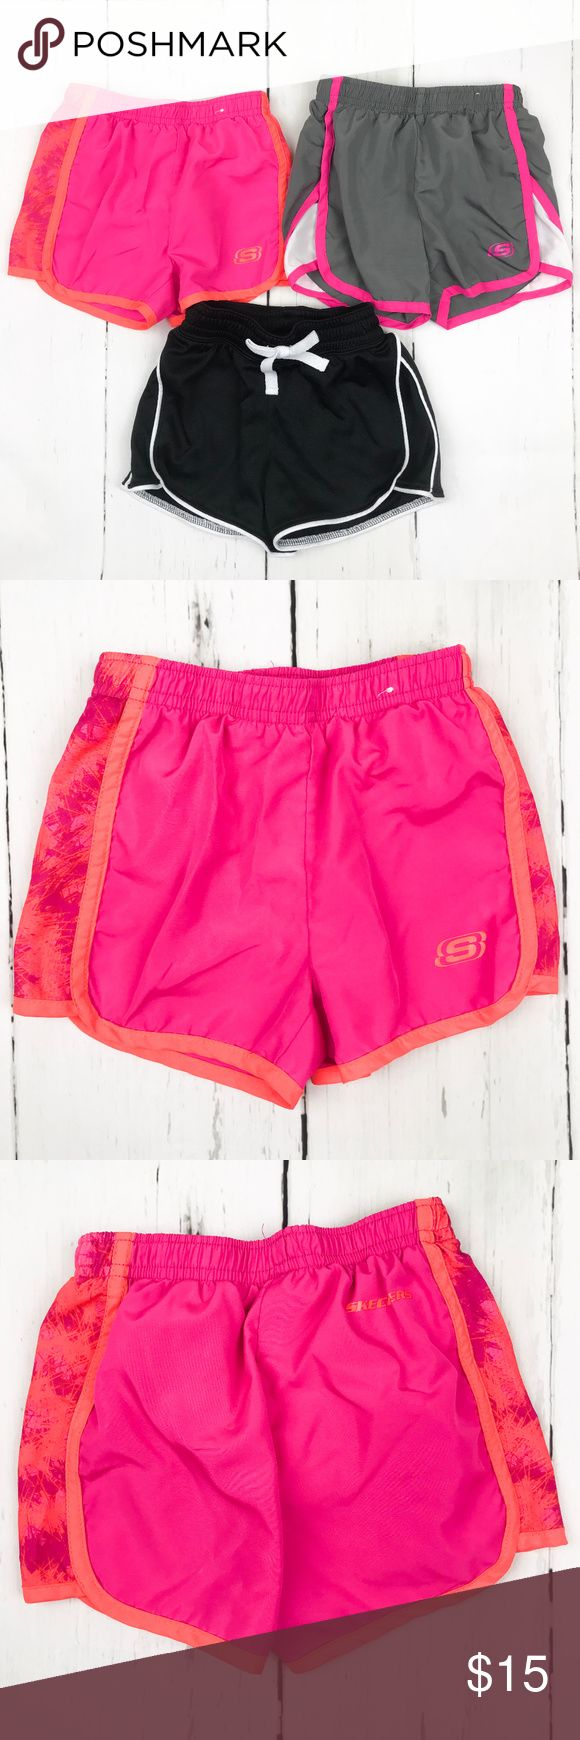 Girls Bundle of 3 Activewear Shorts Size 4 This listing is for the bundle of 3 active wear shorts in a size 4.   Pink Skechers Shorts- lined, size 4, 100% polyester Gray Skechers Shorts- lined, size 4, 100% polyester Black bcg Shorts- unlined, Size XXS (4-5), 100% polyester  This bundle is great for playing soccer, or just having a casual play option for your toddler! These running shorts are versatile and comfortable and perfect for warmer weather and the summer! They layer great over…